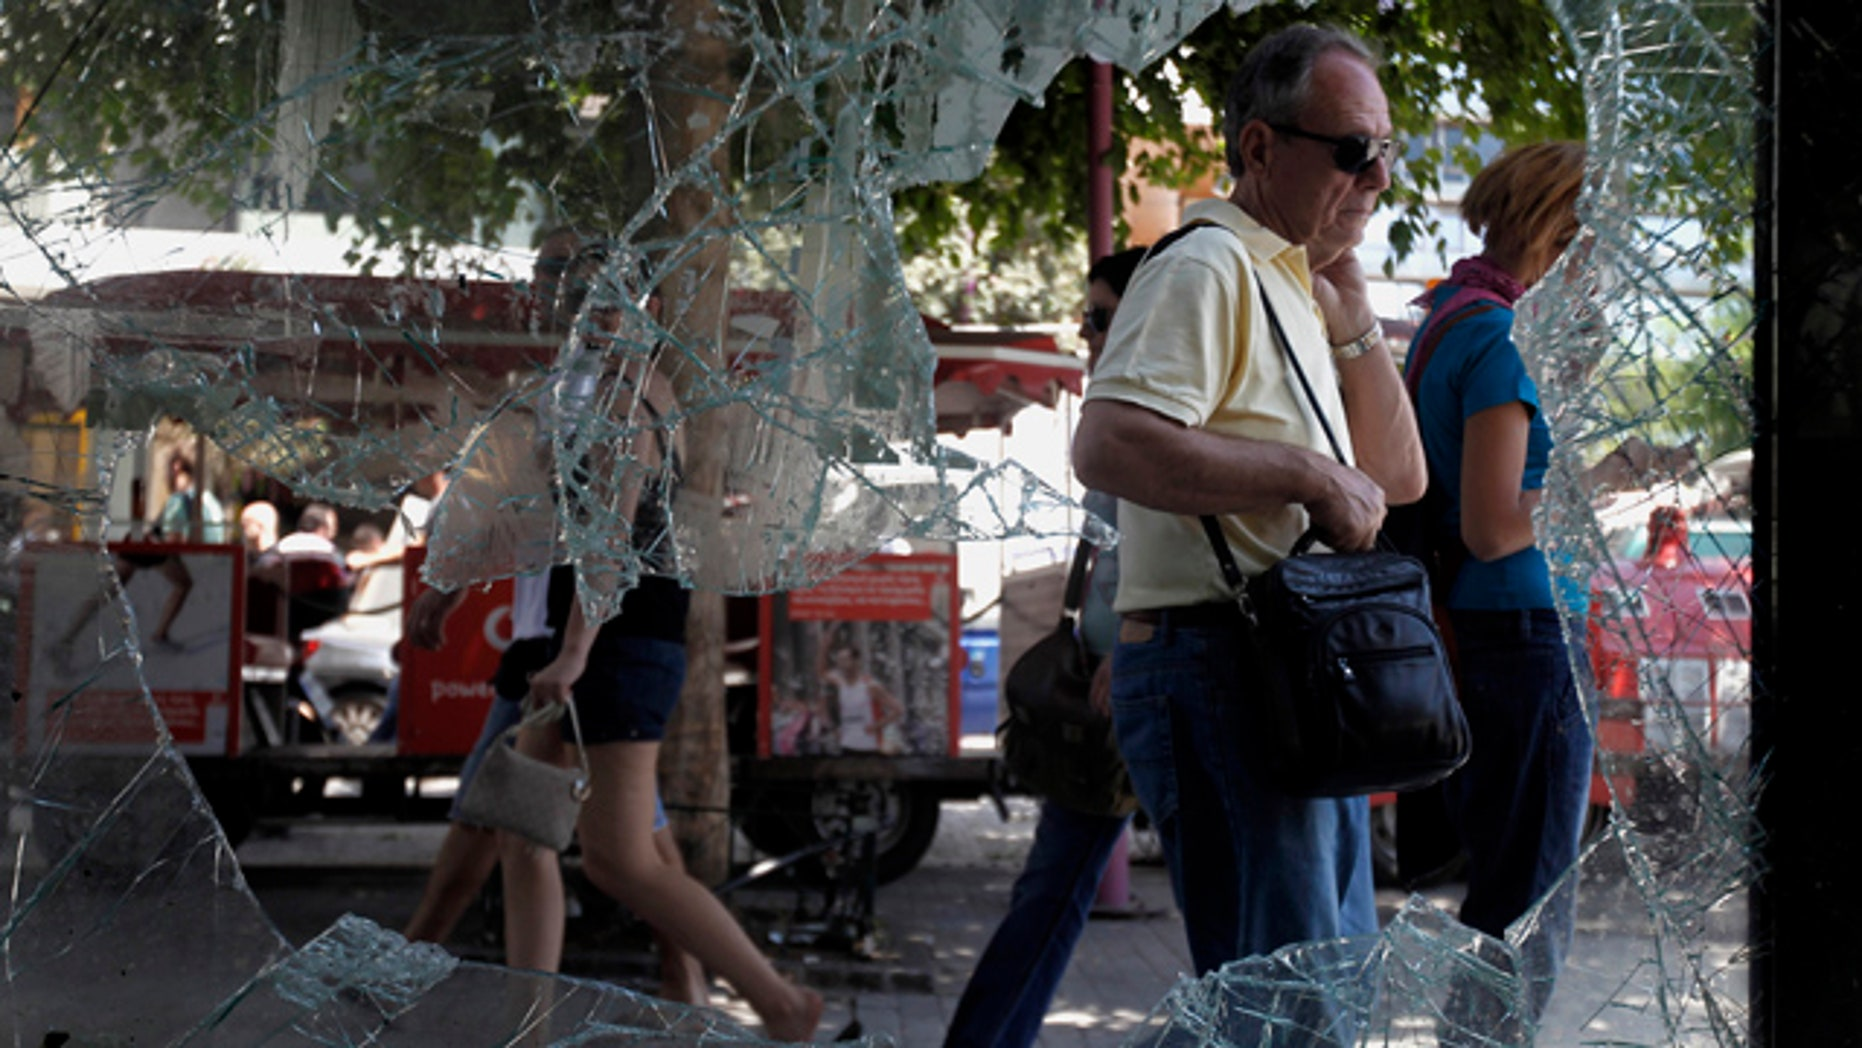 June 30: Athenians walk by a broken window of a building in central Athens.